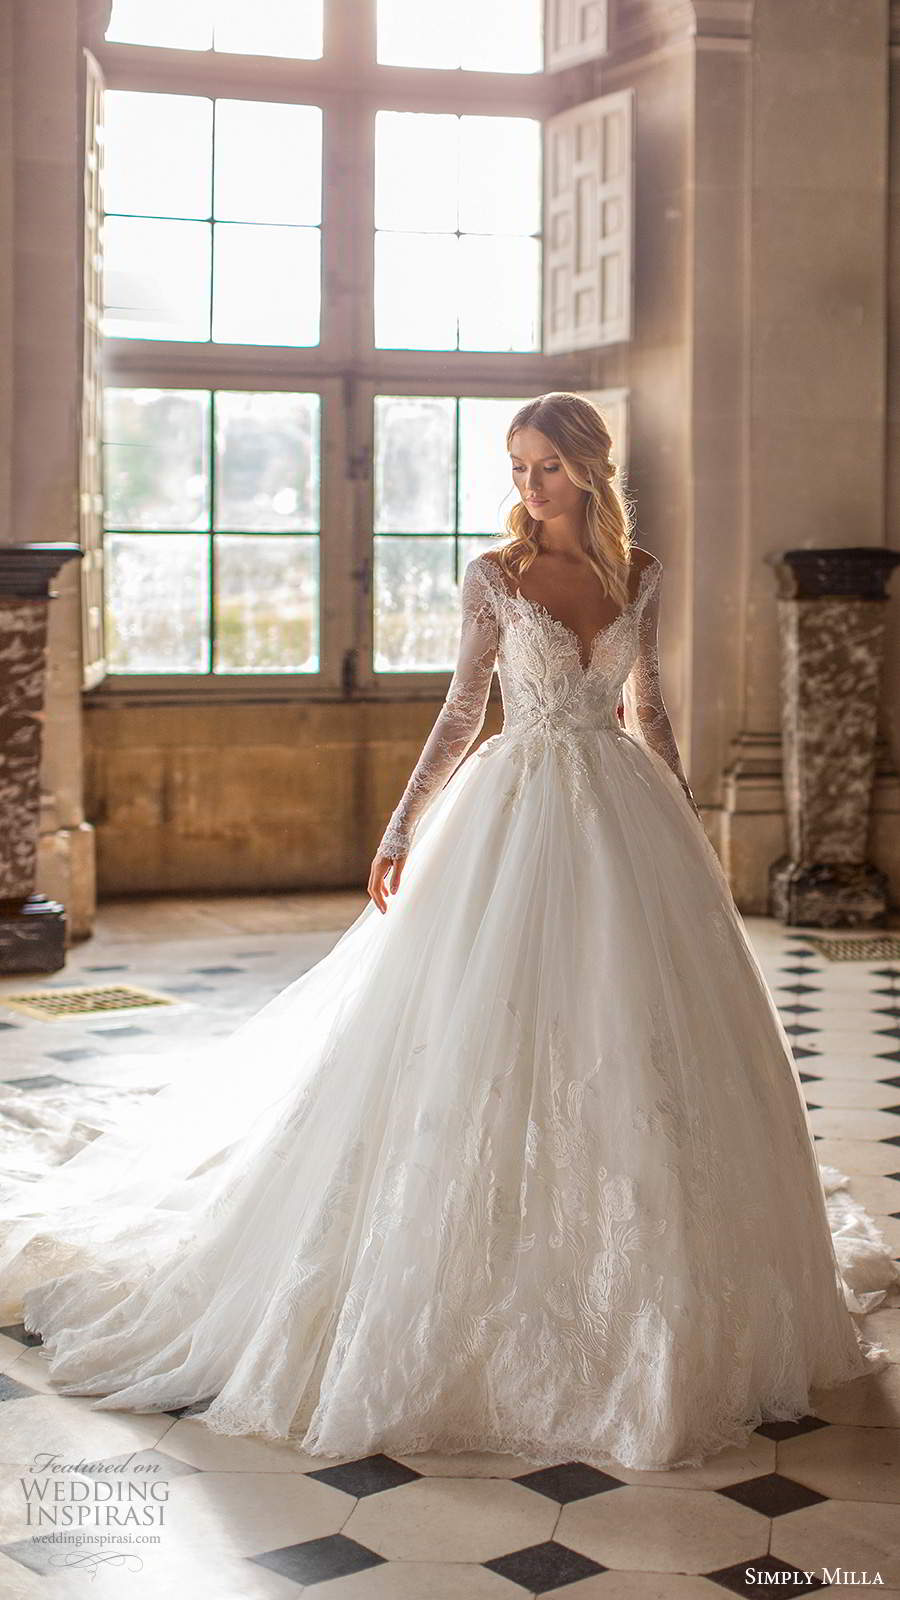 simply milla nova 2020 bridal long sleeves off shoulder sweetheart neckline embellished bodice a line ball gown wedding dress chapel train (7) mv